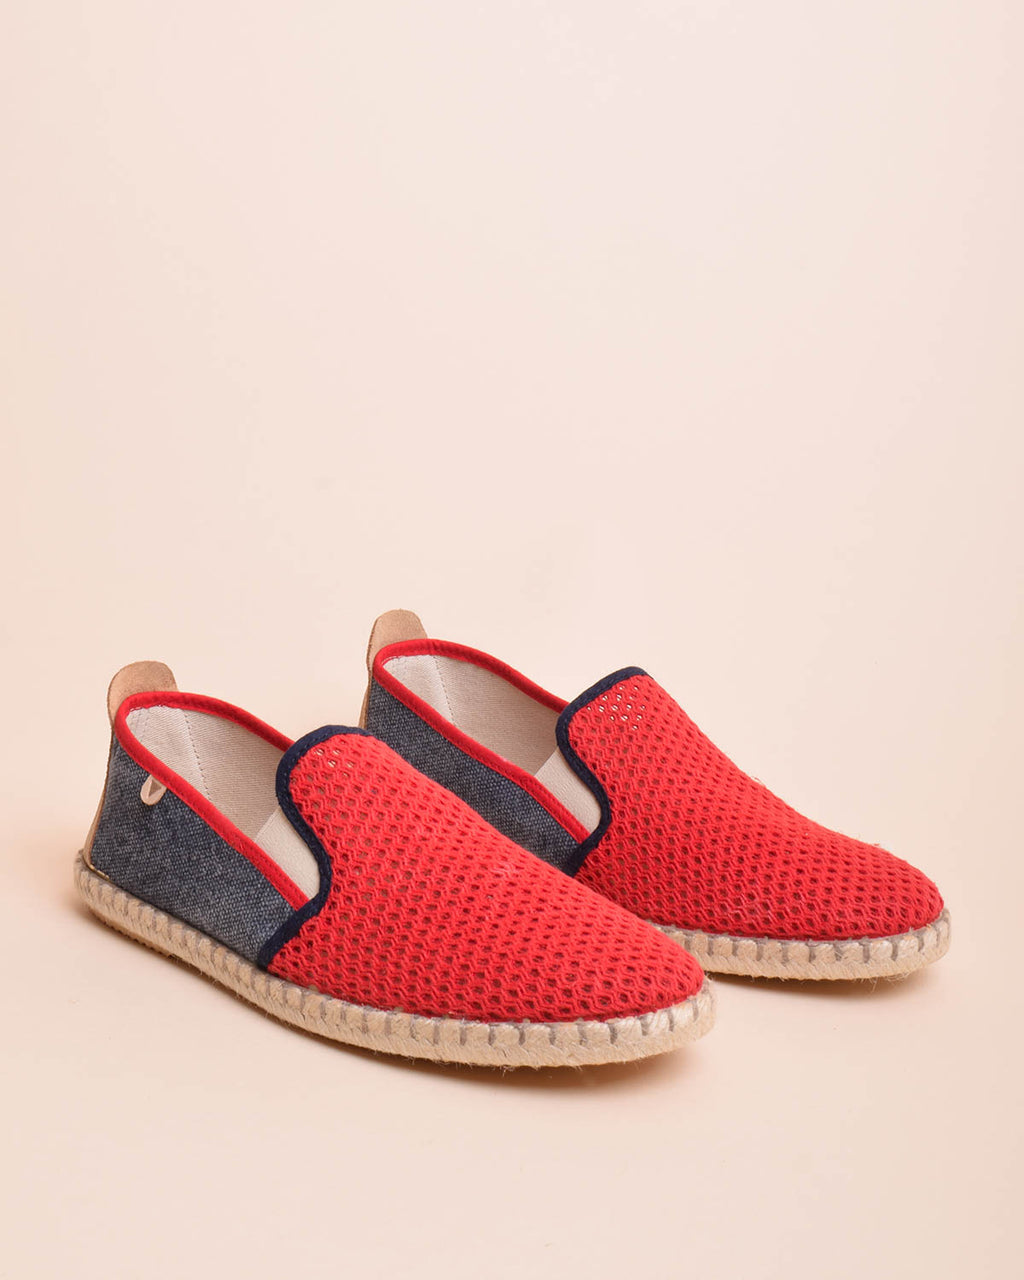 Tito Canvas and Cotton Mesh Jute Wrapped Slip On Shoes - Red / Navy